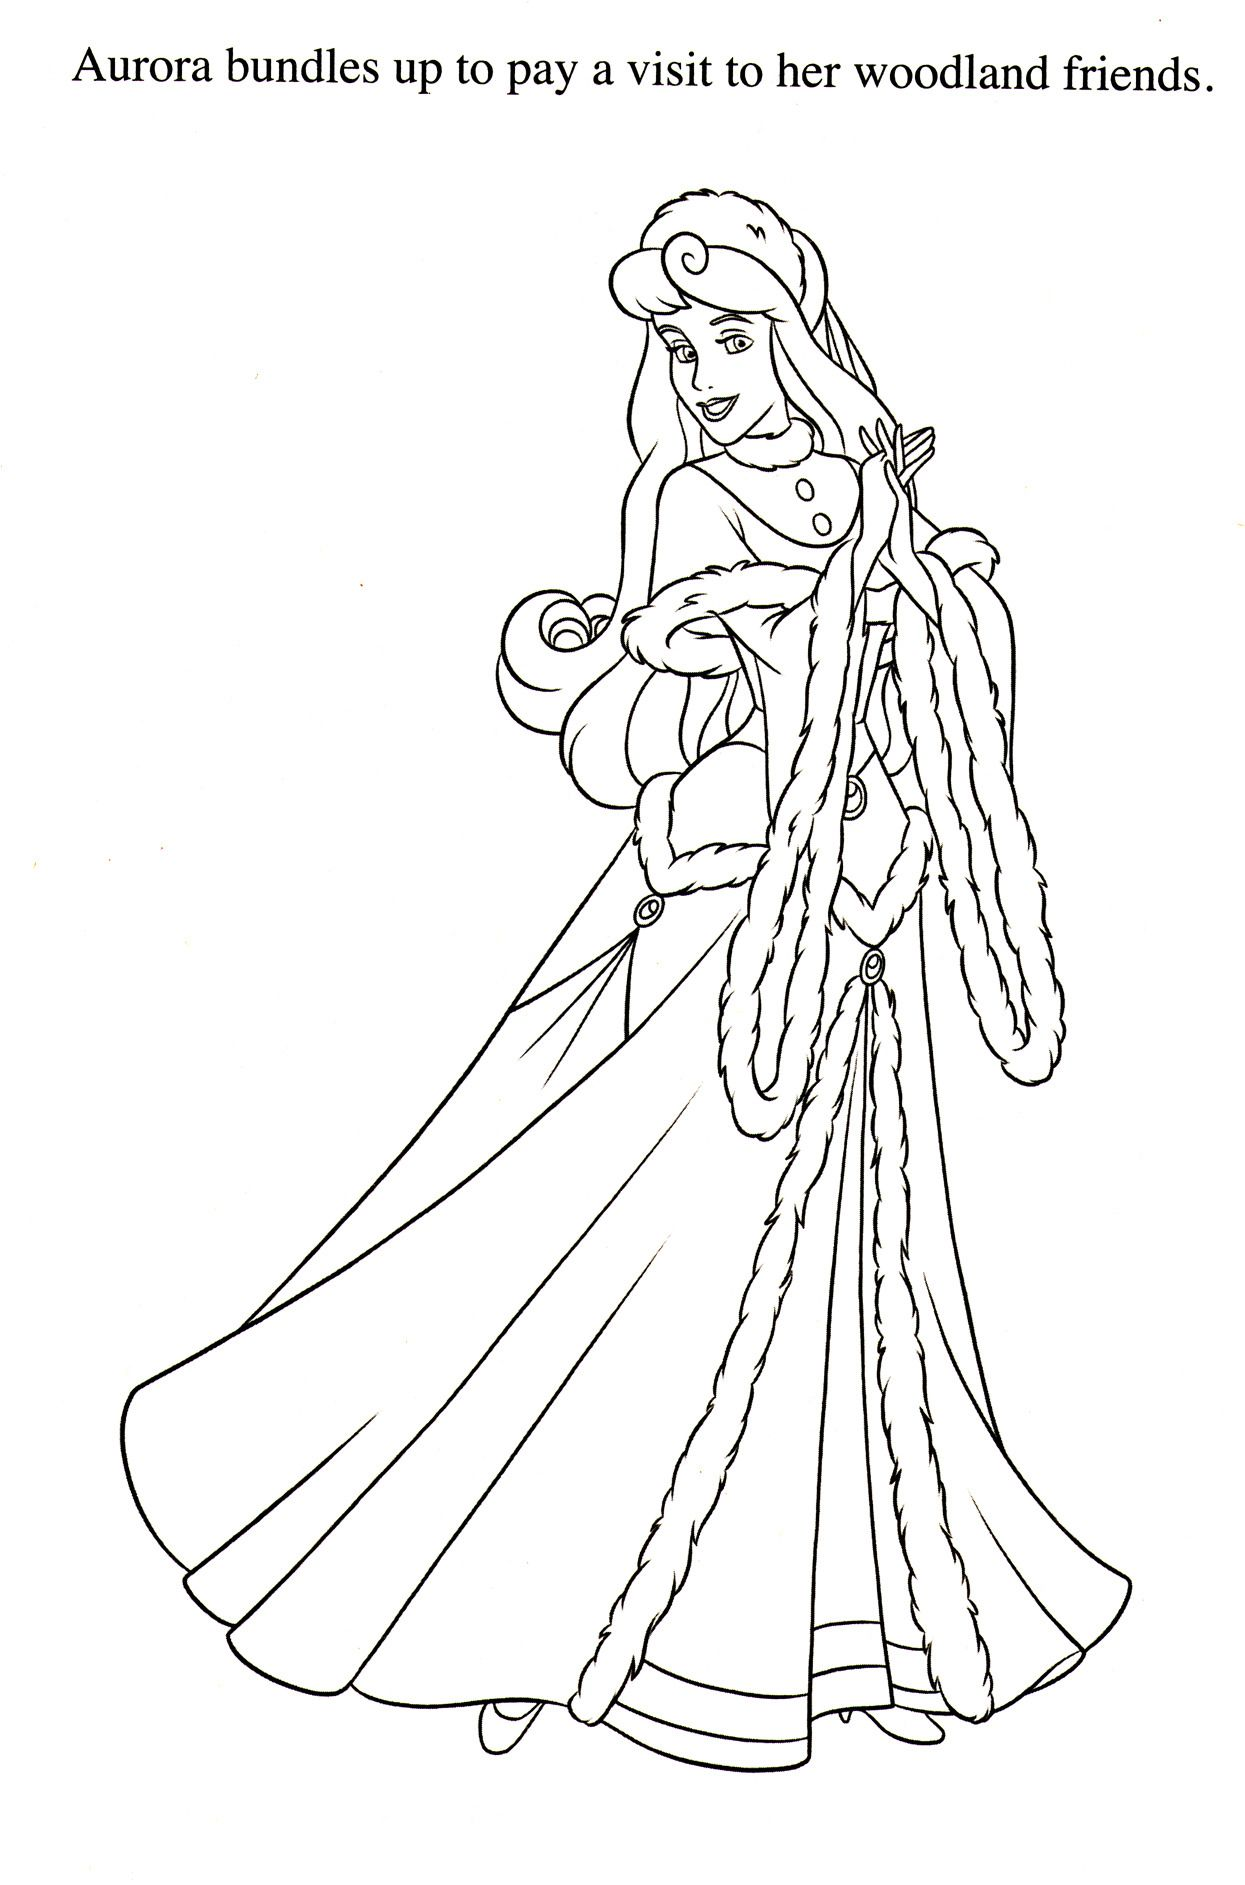 Disney Coloring Pages Sleeping Beauty Coloring Pages Disney Coloring Pages Cinderella Coloring Pages